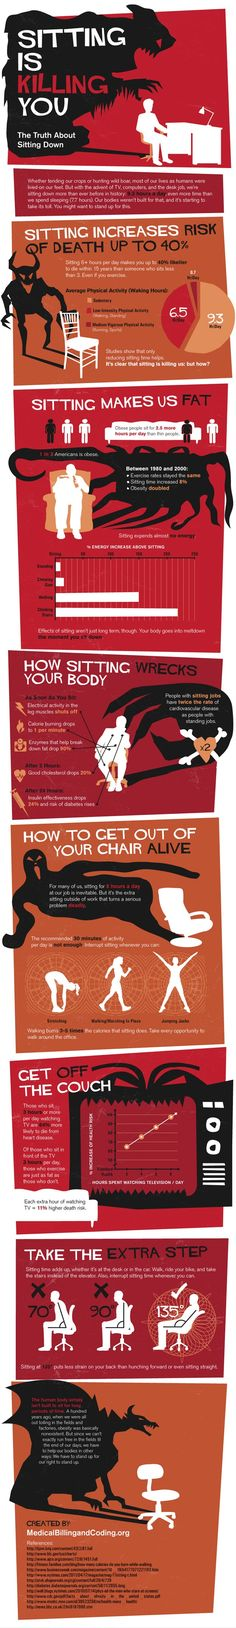 Sitting is Killing You - The Truth about Sitting Down